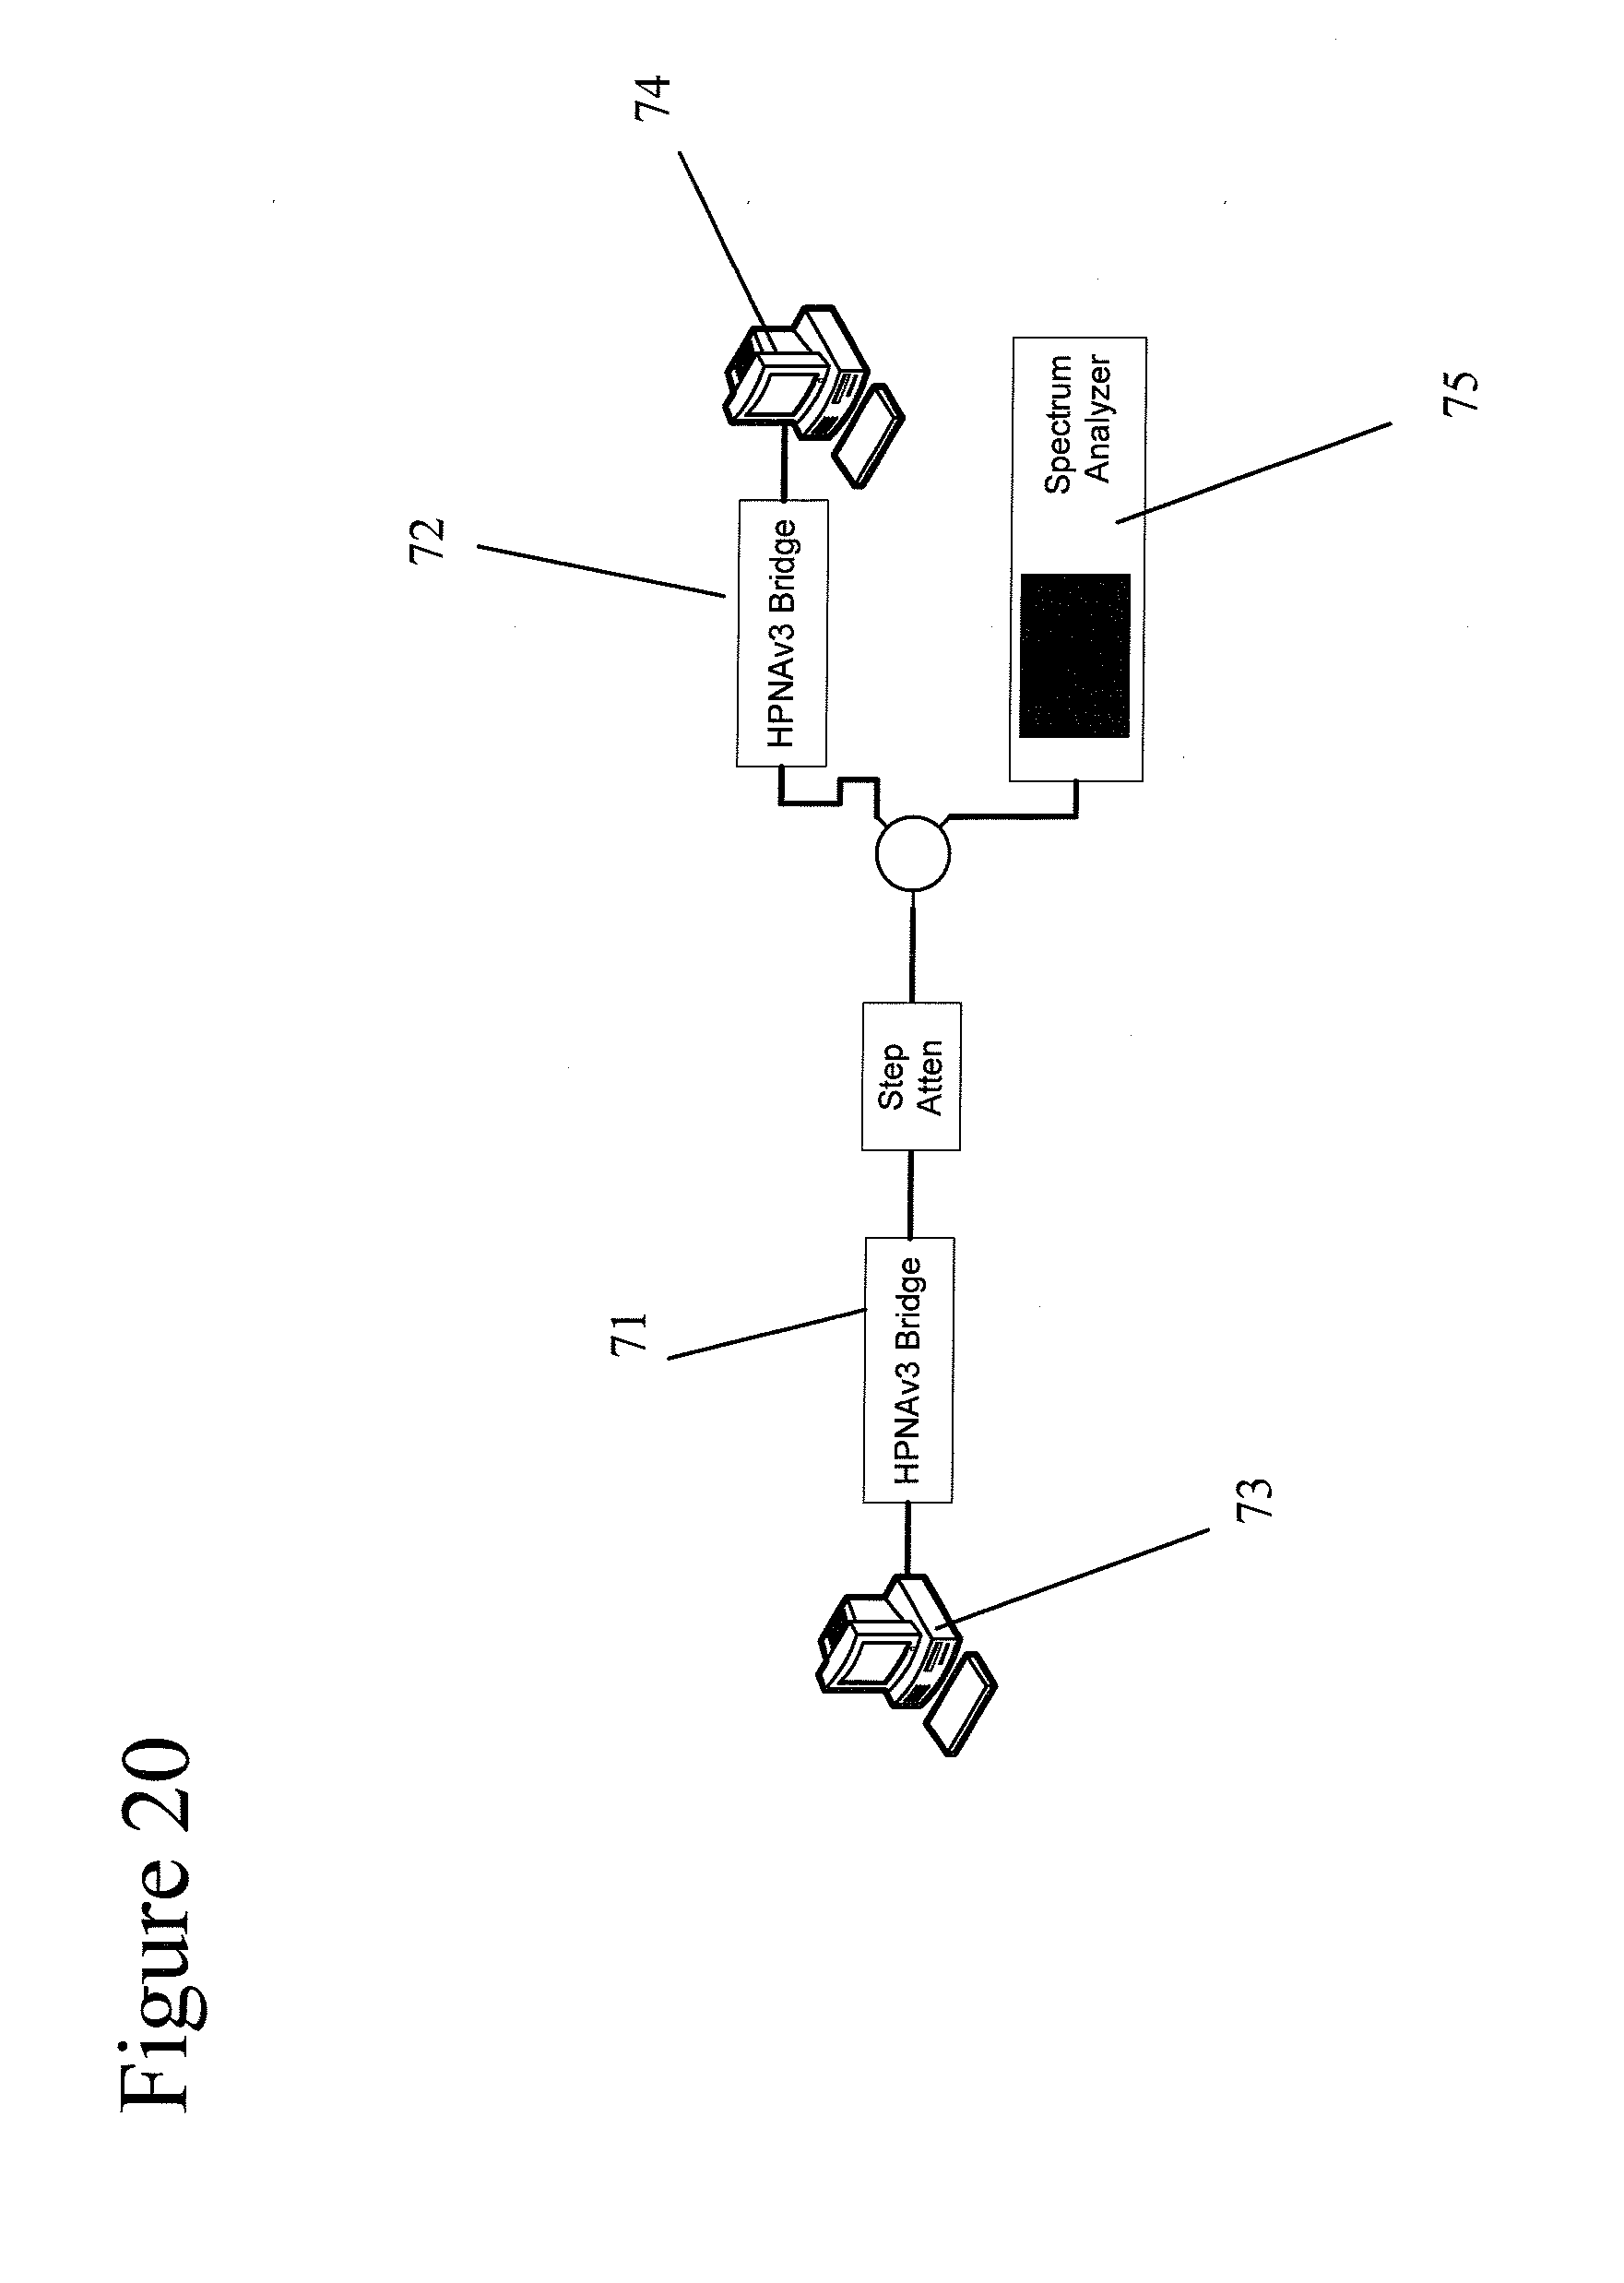 patent us20080013612 home network testing patentsuche OSI Model Diagram patent drawing